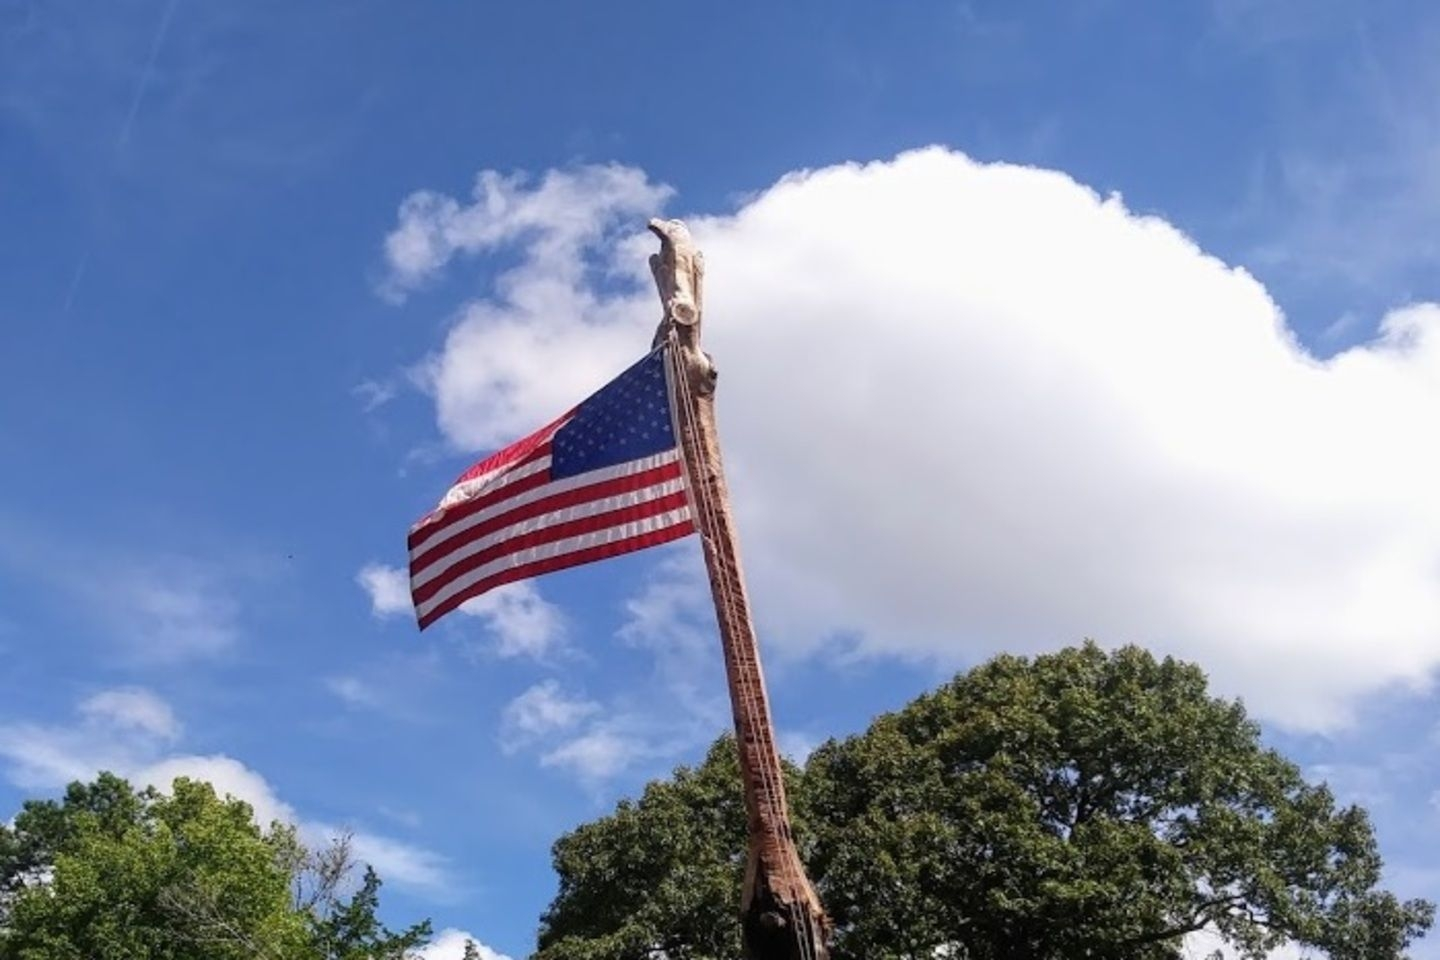 Member Jerry Blackwell submitted this picture of Old Glory on a custom-carved pole.